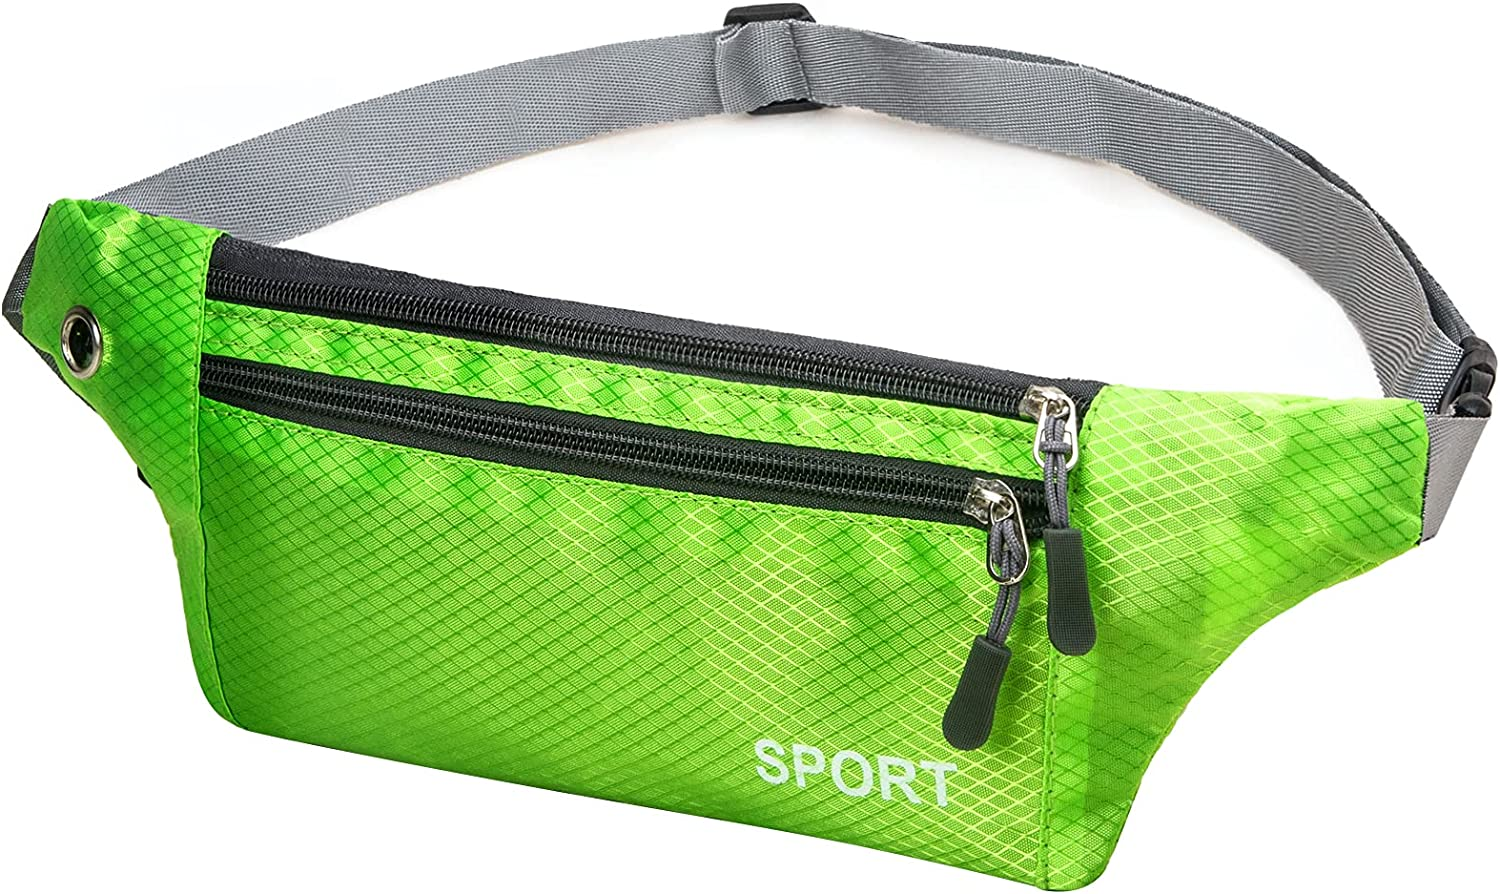 Crossbody Memphis Mall Super beauty product restock quality top Fanny Pack with 3-Zipper Water Pockets Men for Women